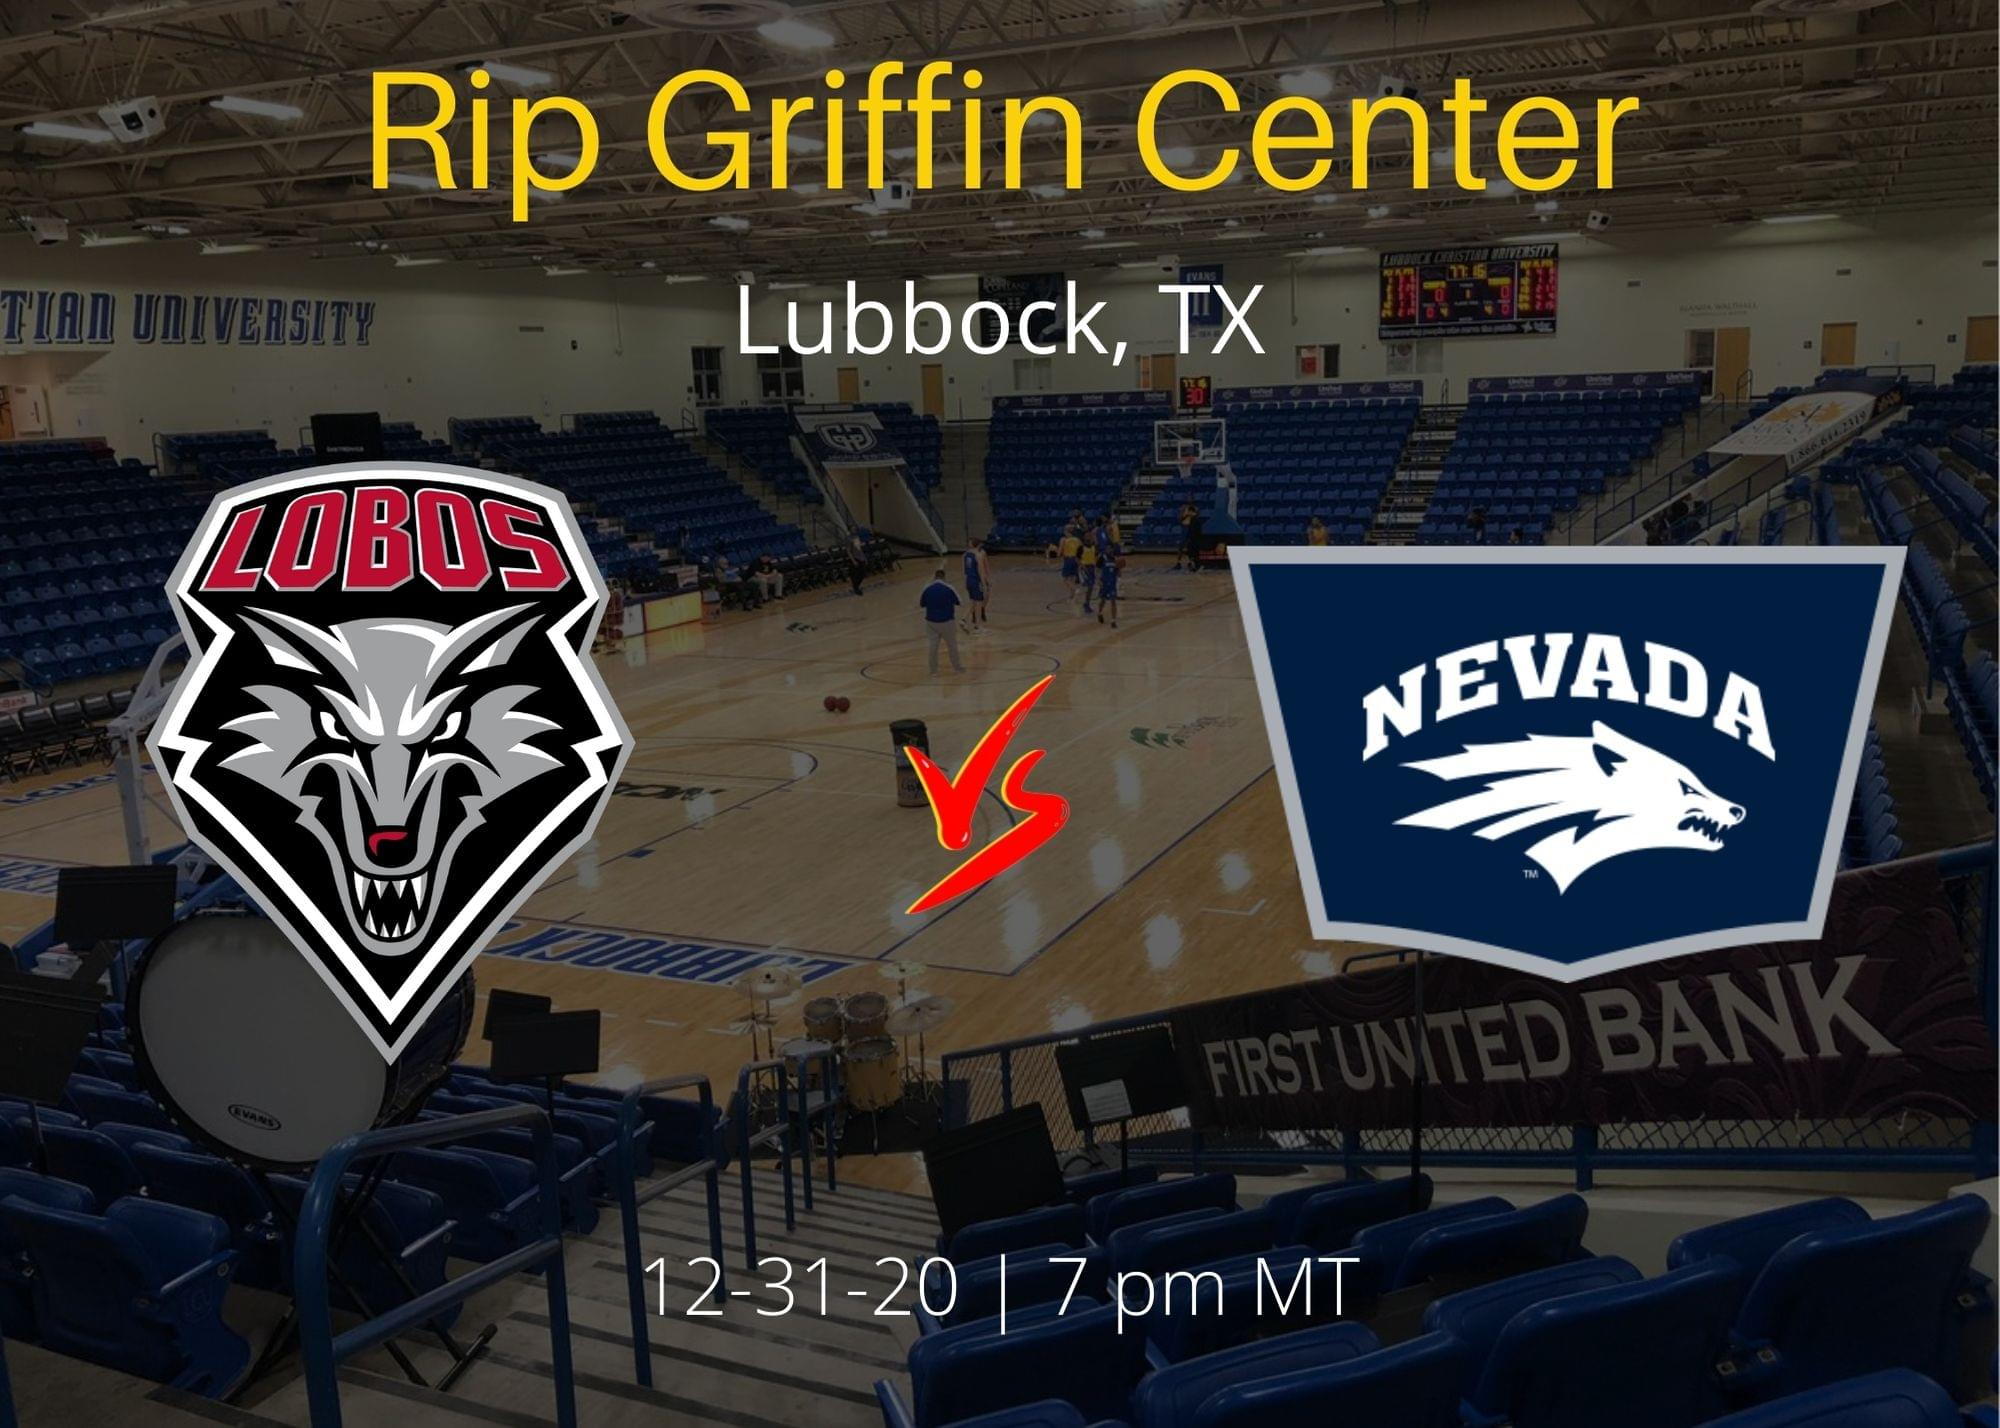 UNM men's basketball to play first two home series of the season in Lubbock